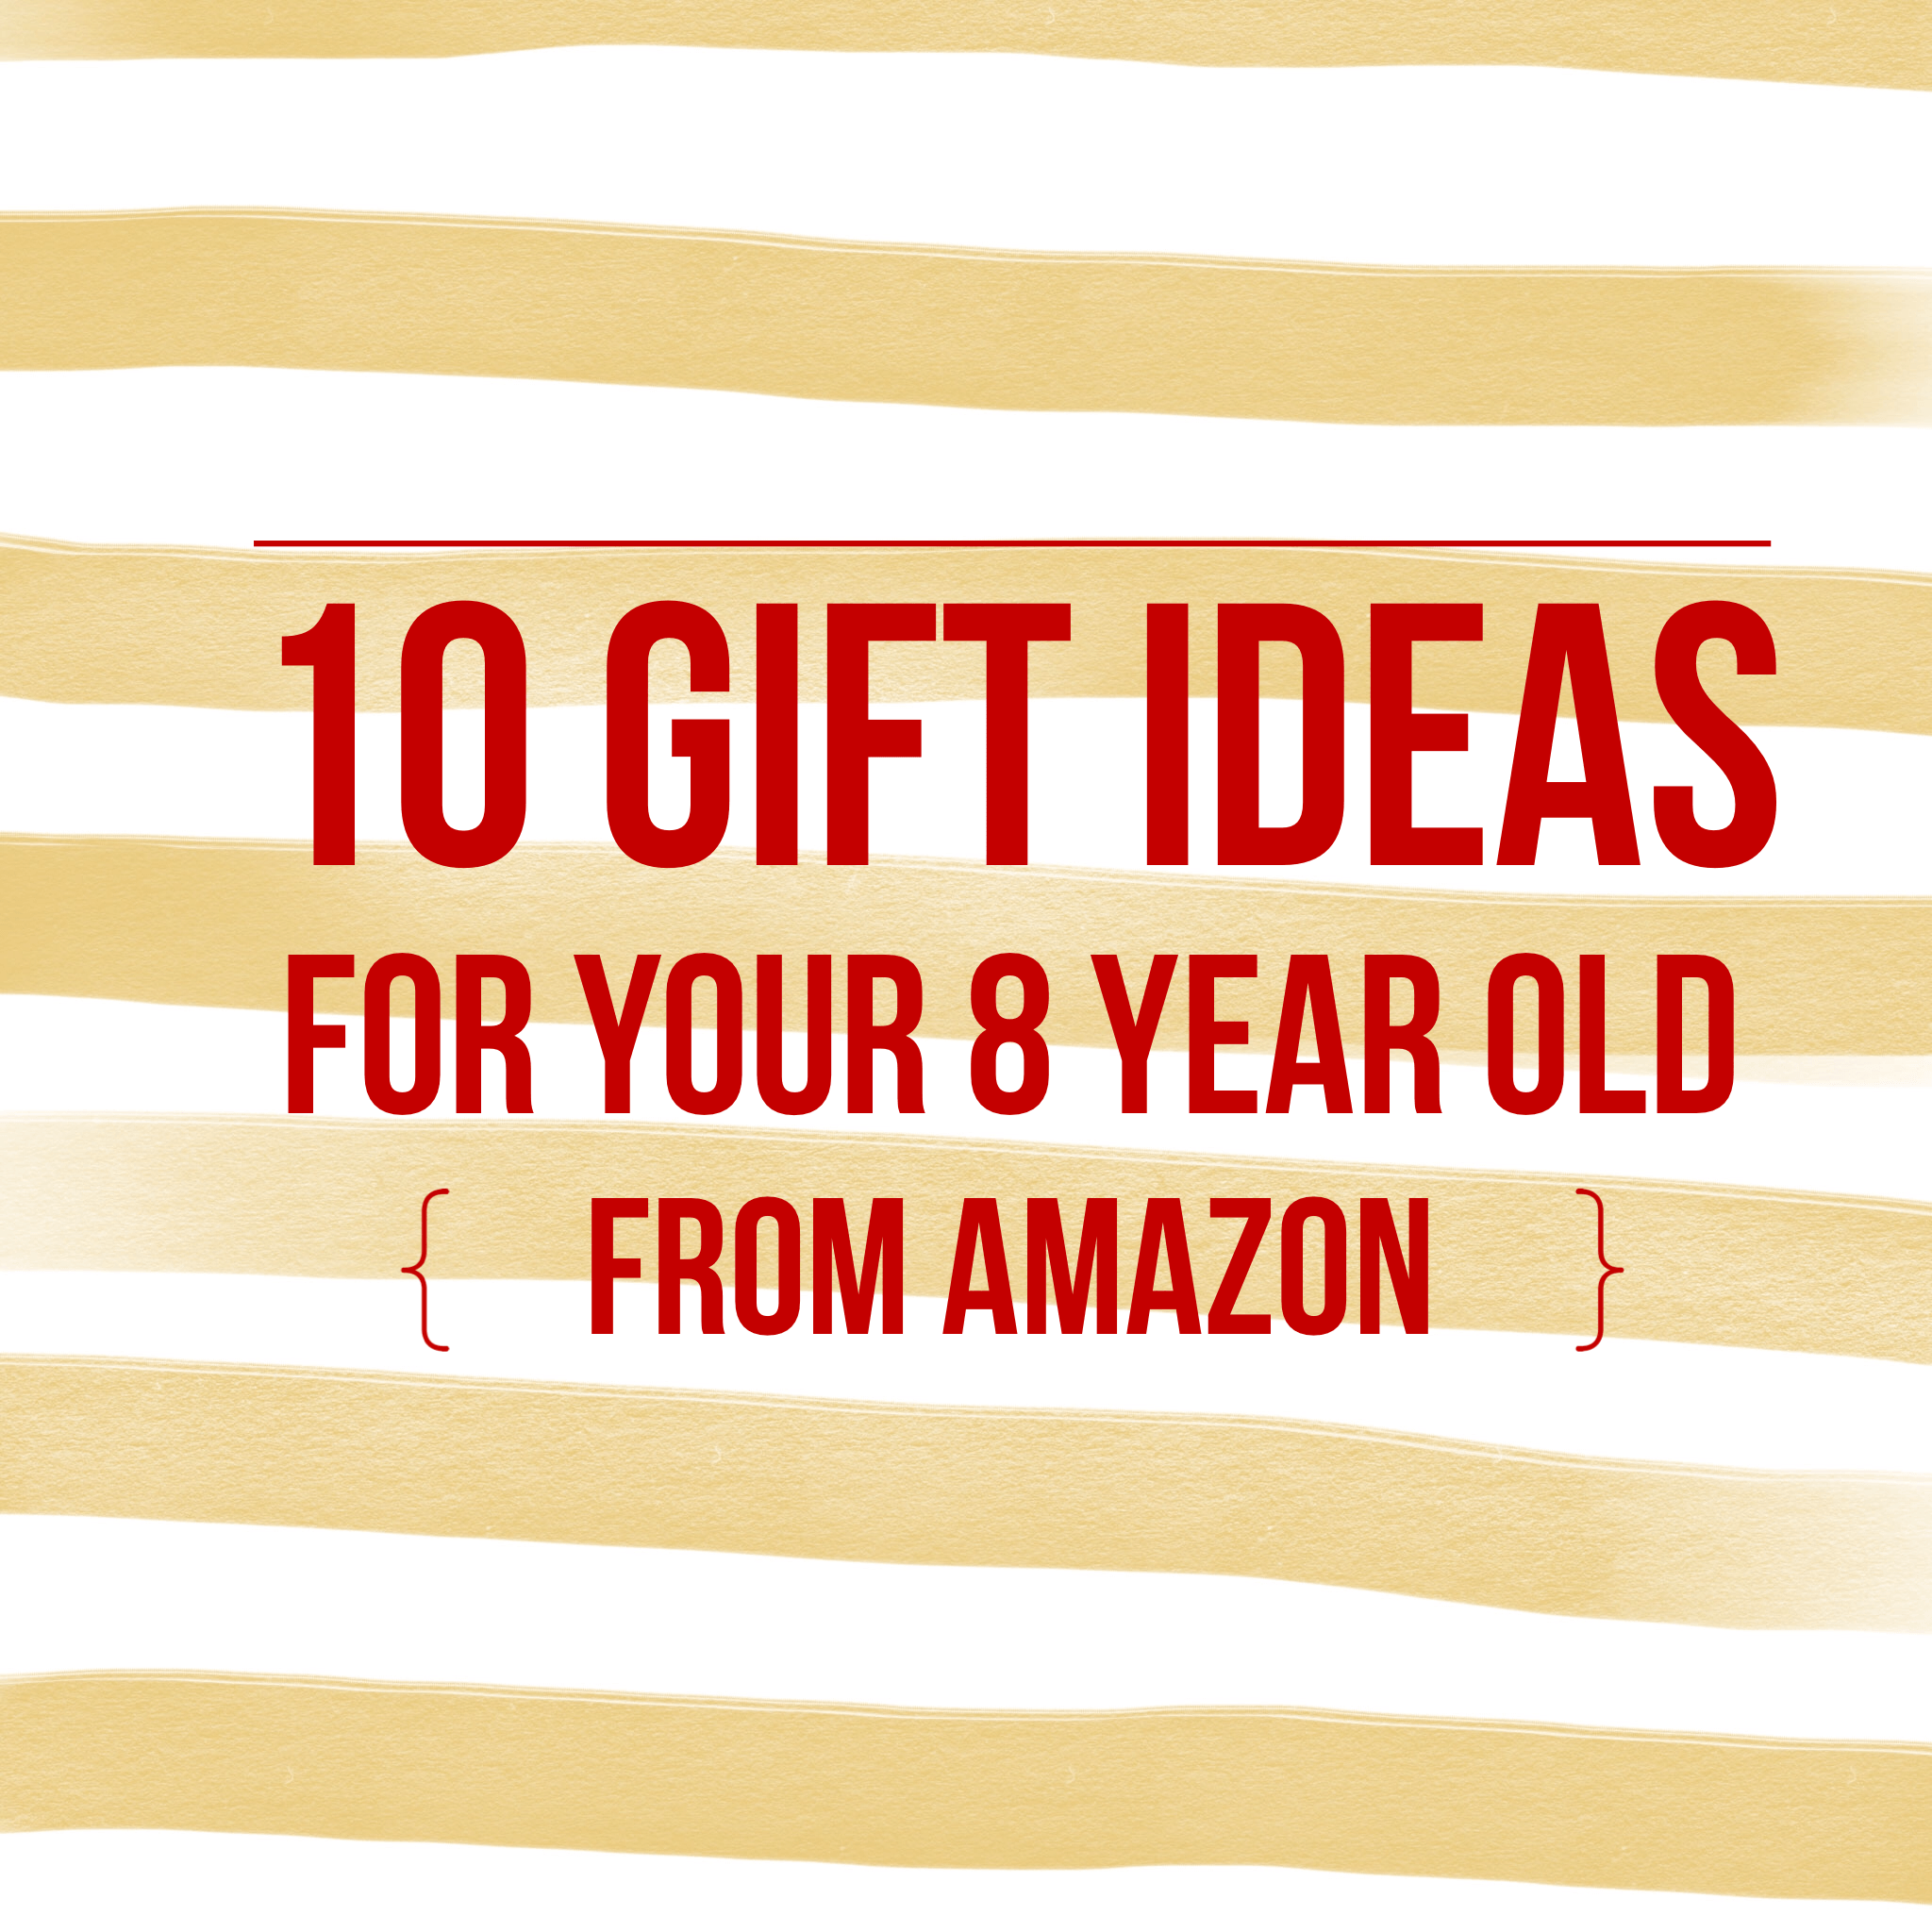 10 Christmas Gift Ideas For Your 8 Year Old Girl From Amazon